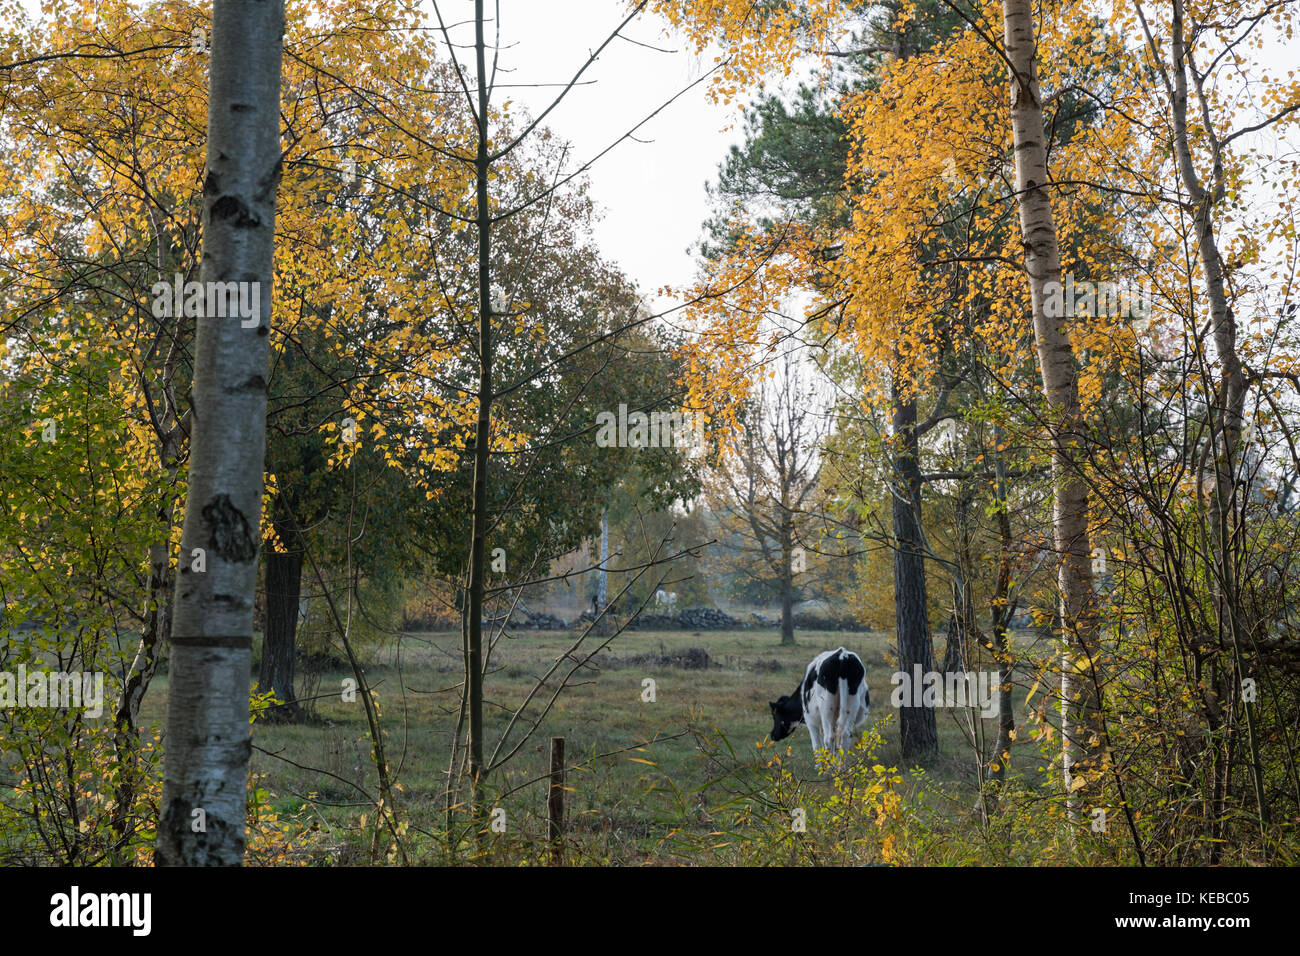 Grazing cow in a fall season colored landscape at the swedish countryside - Stock Image